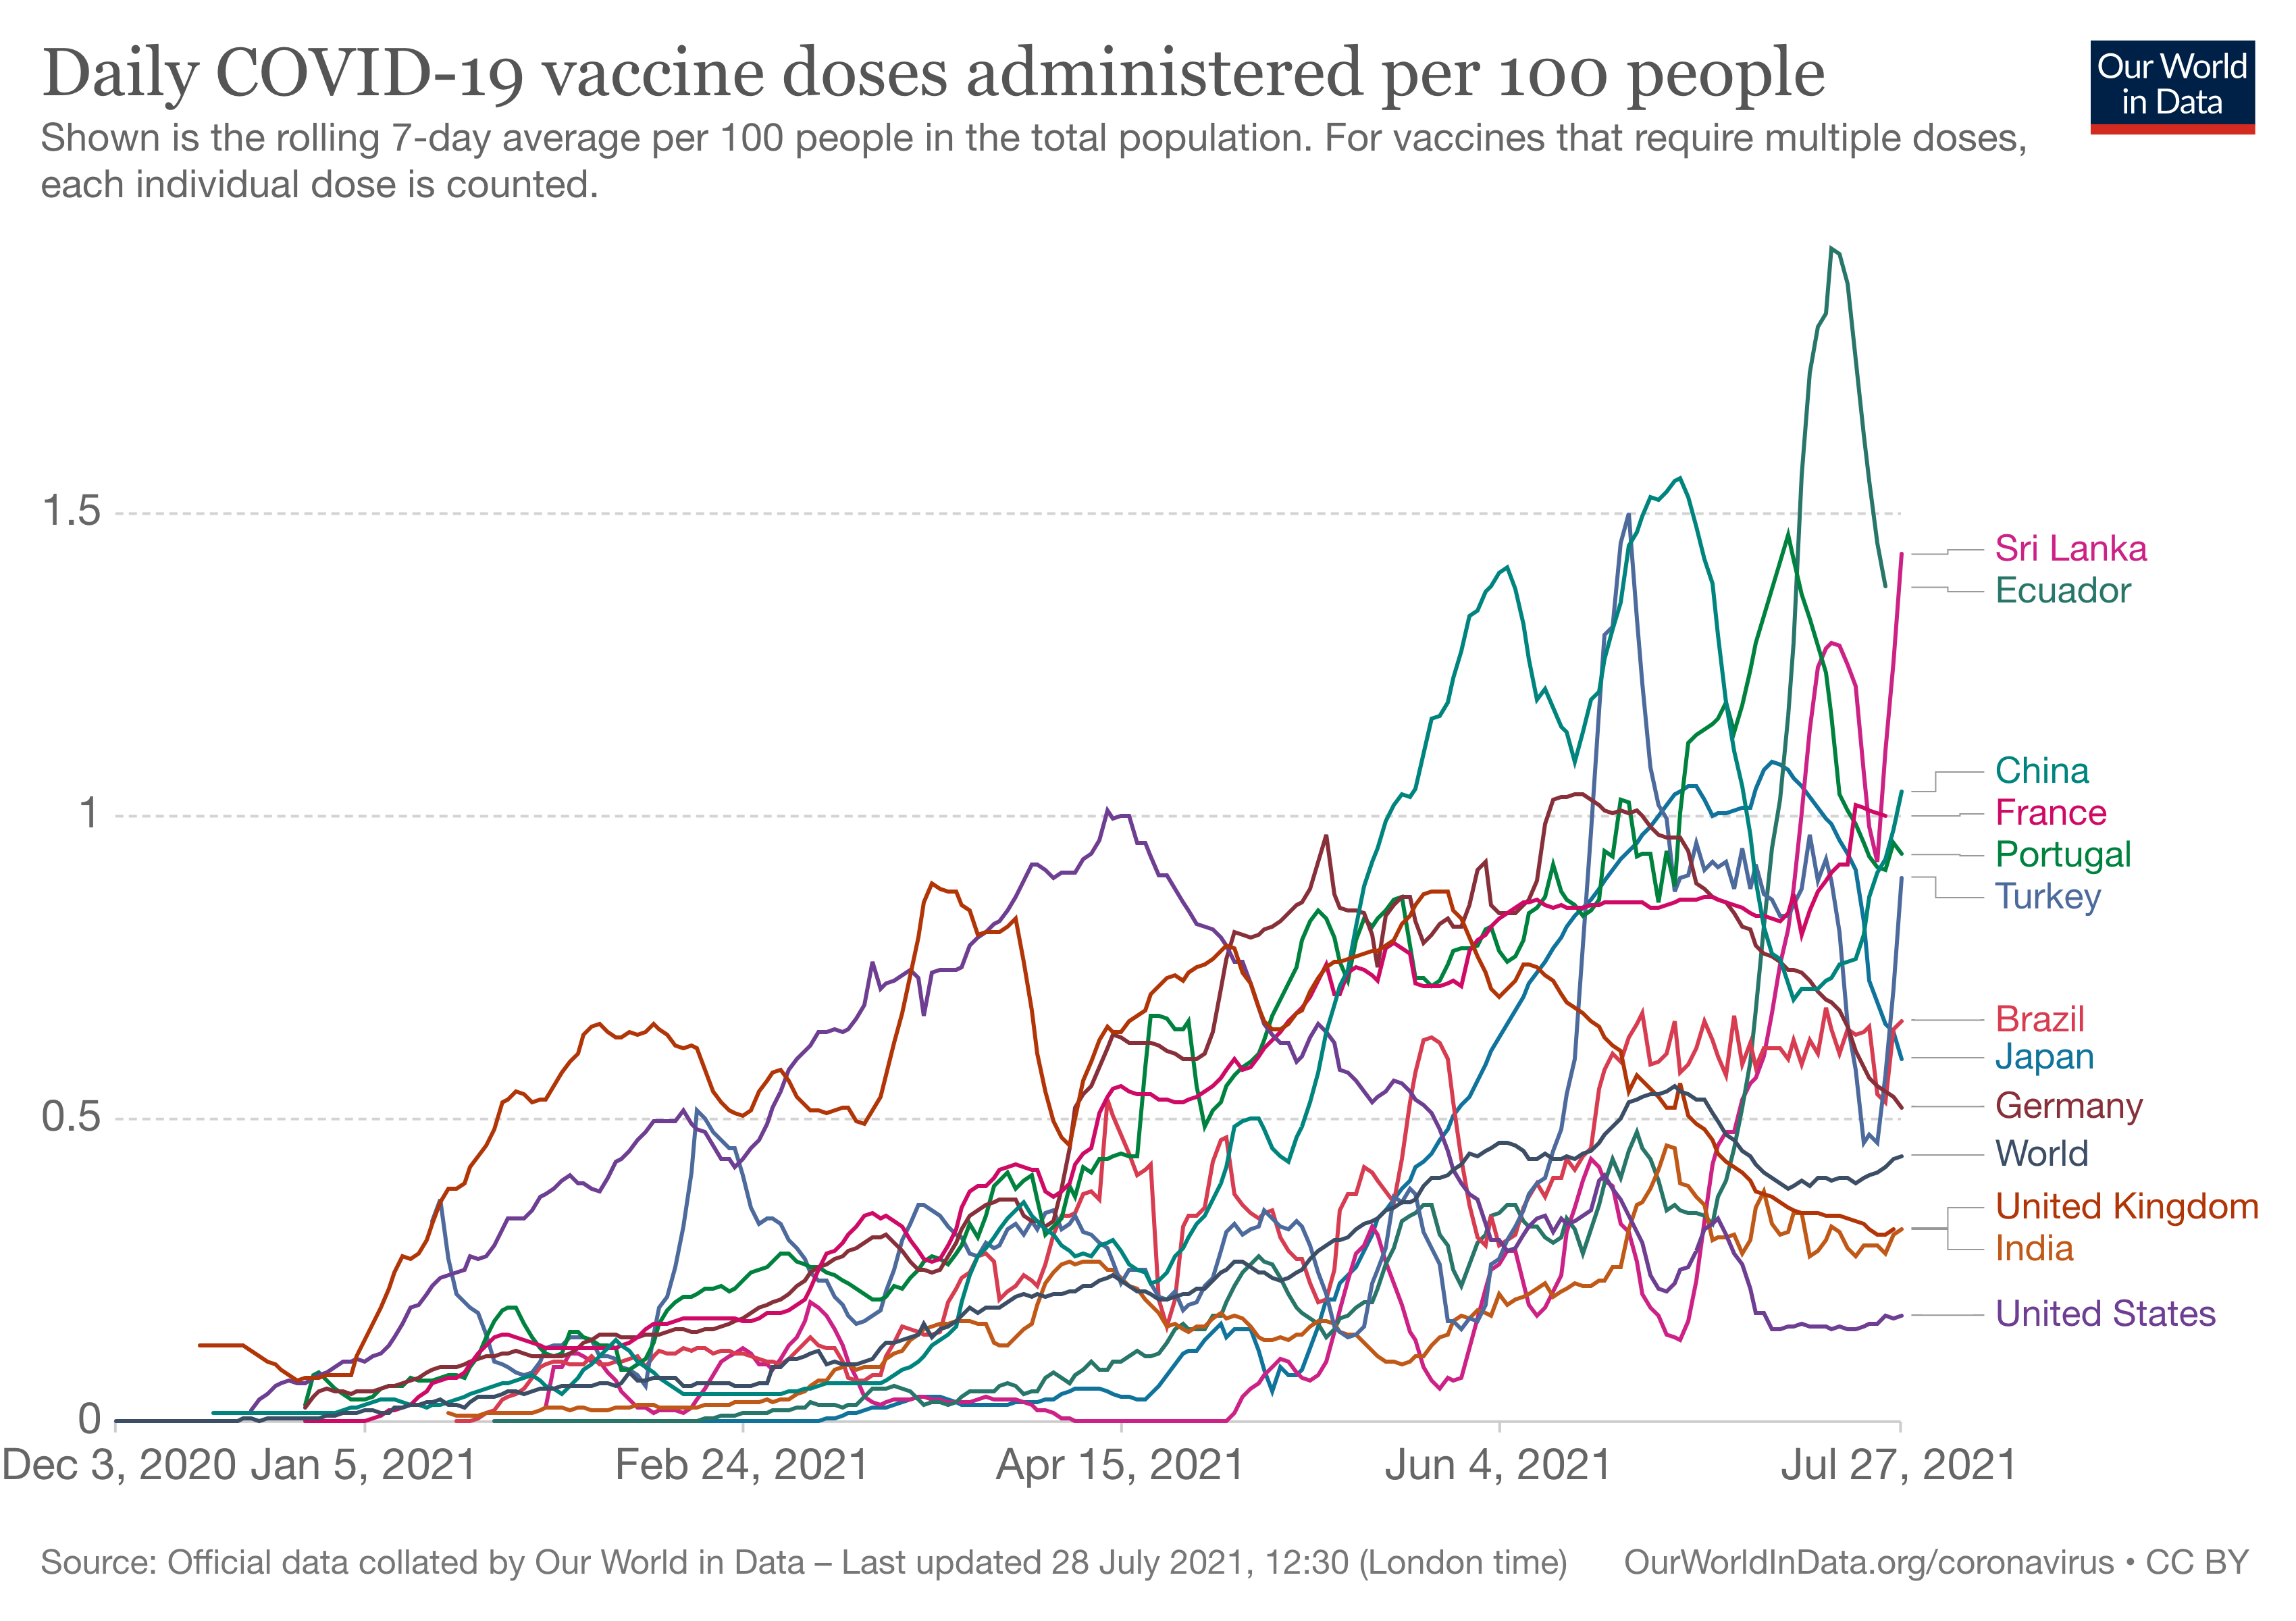 Daily COVID-19 vaccine doses administered per 100 people in selected countries.